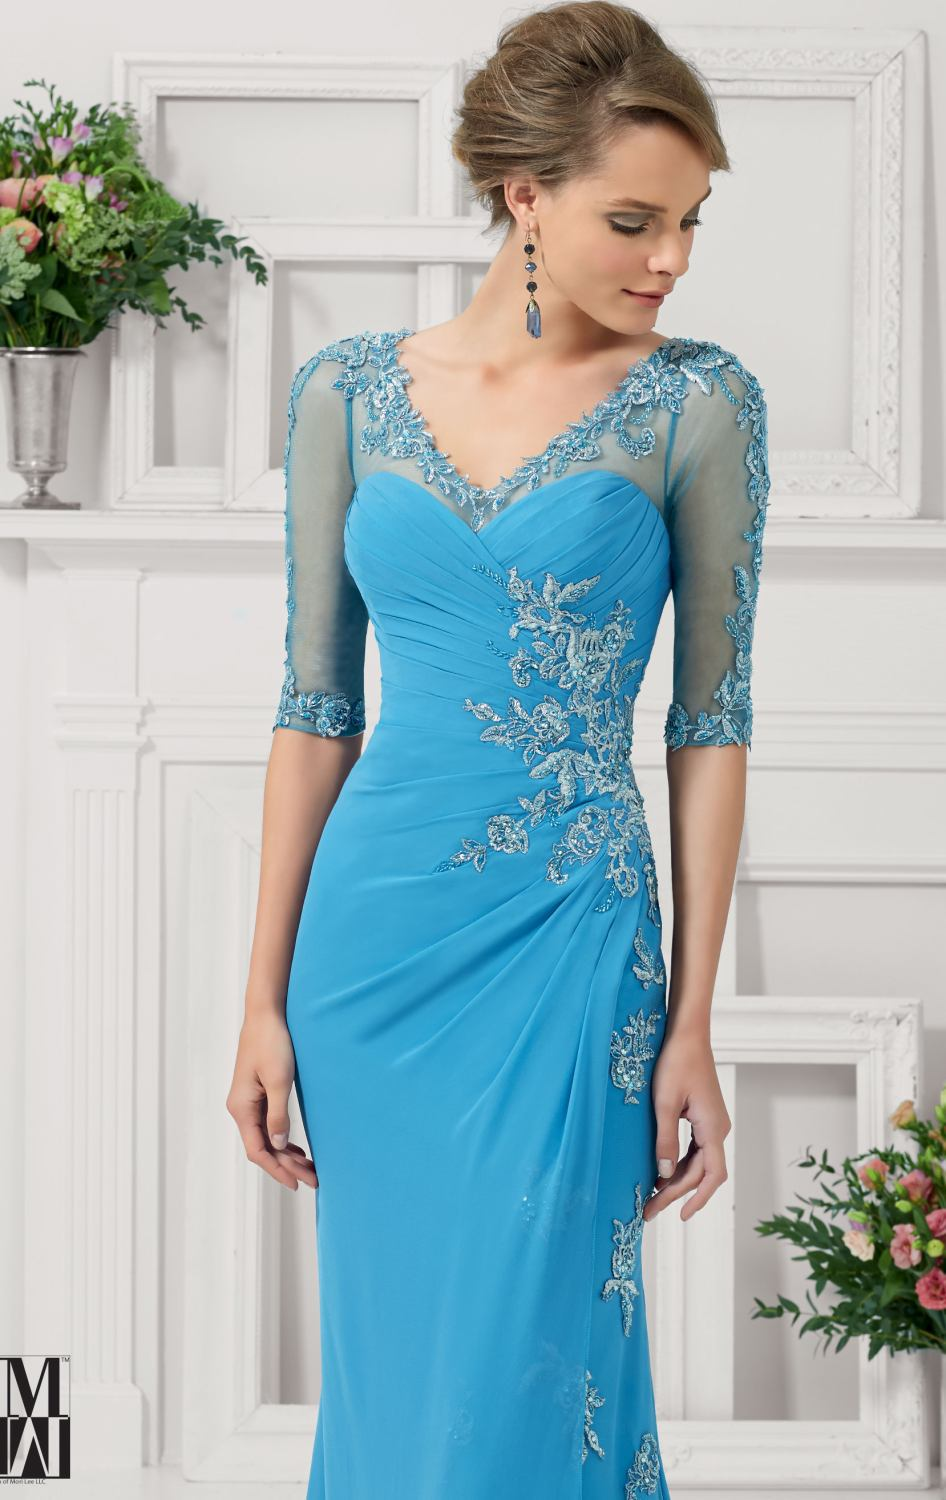 Long Light Blue and the Bride Dresses Mother of Big | Dress images